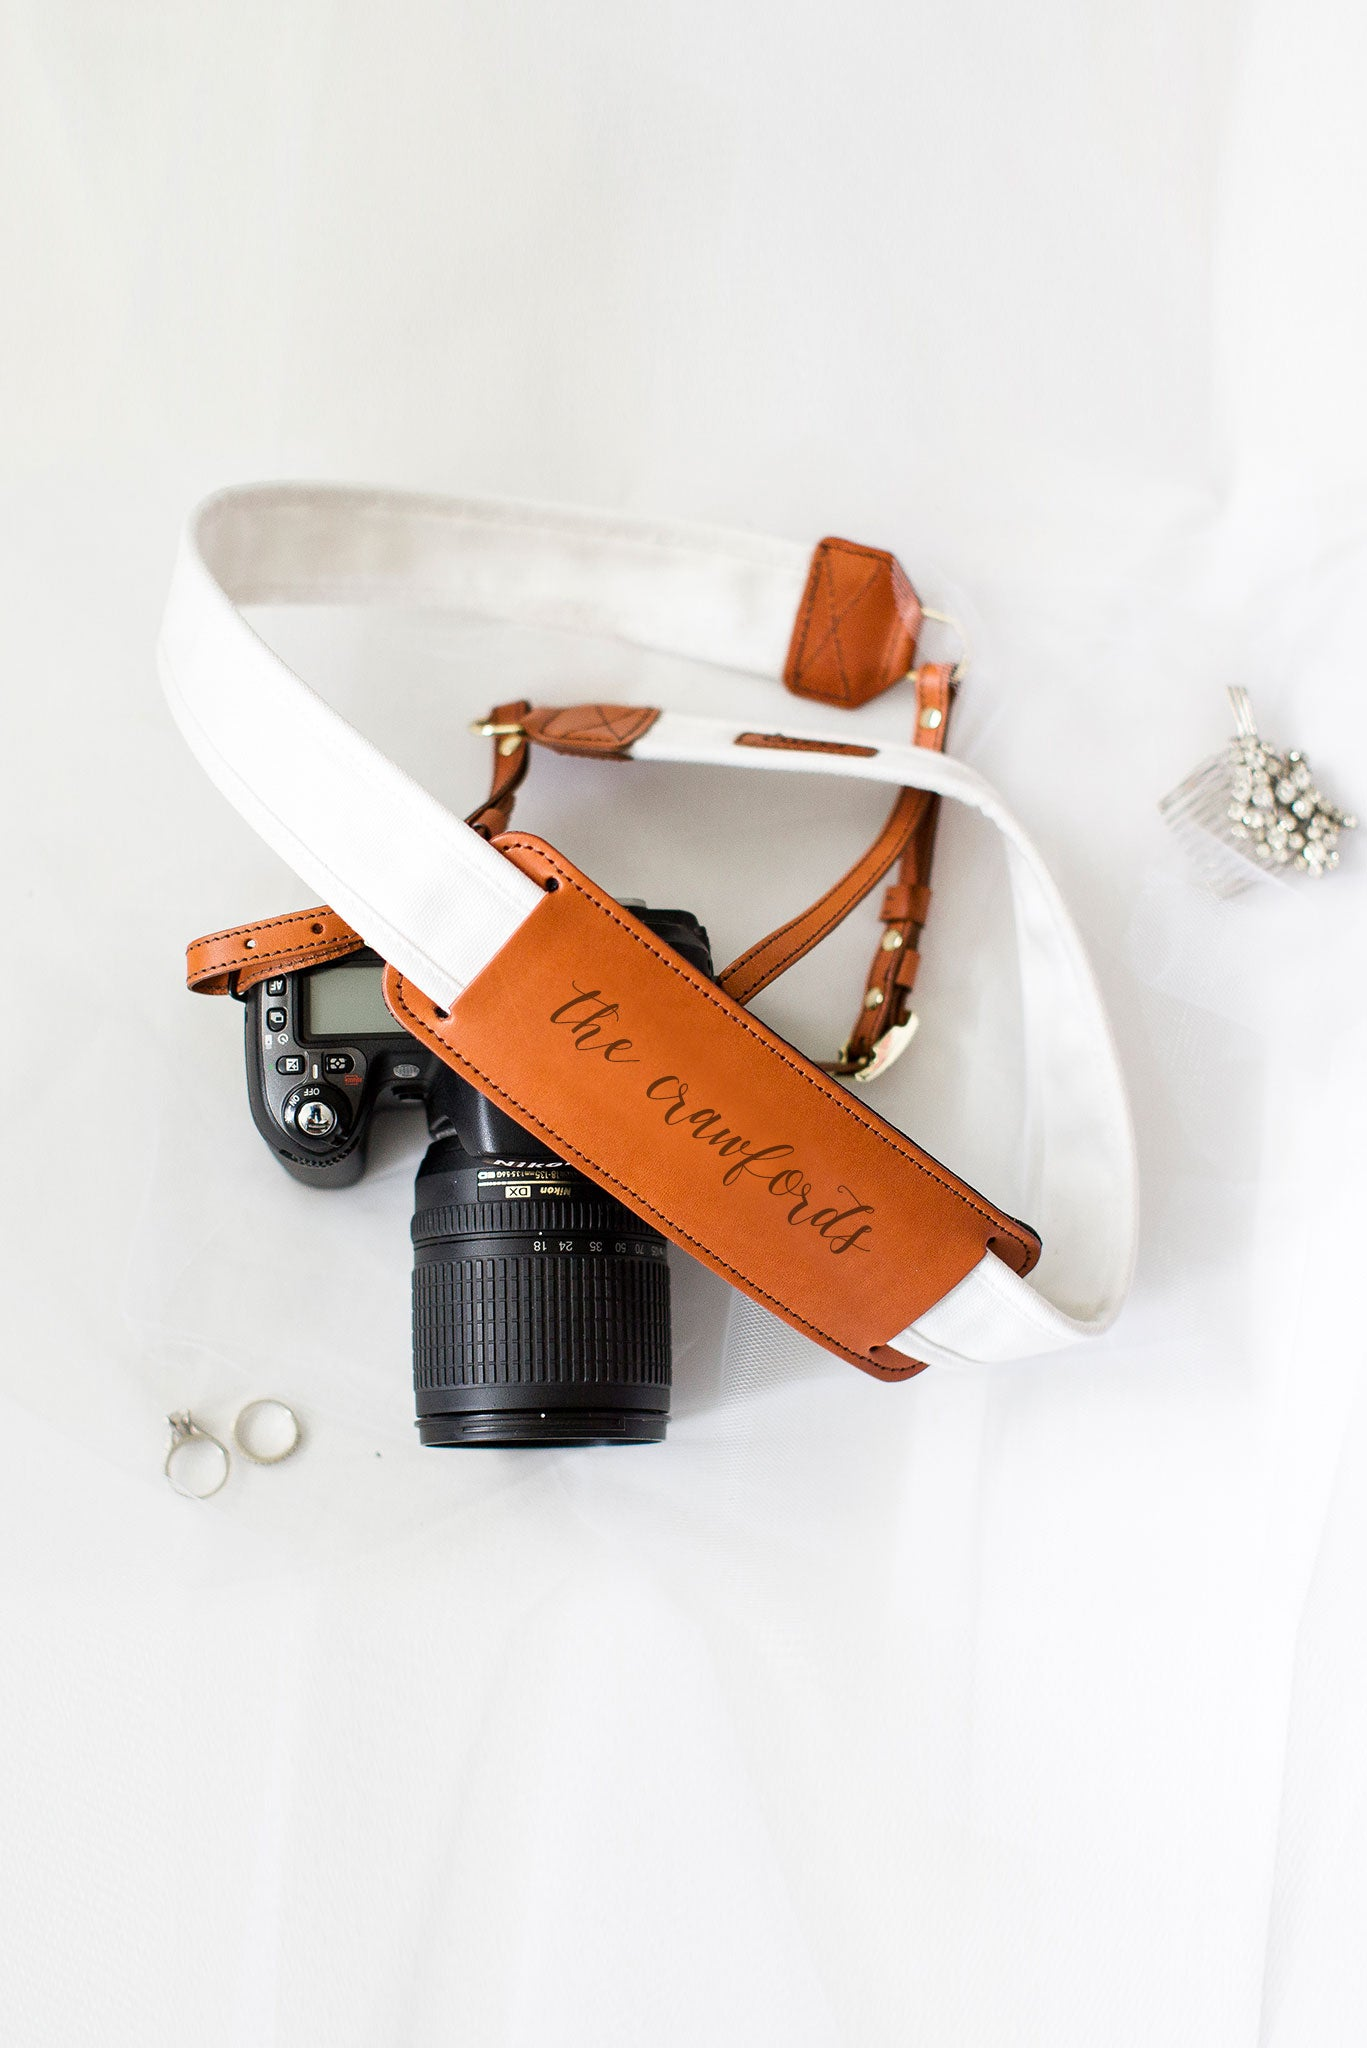 FOTO | The Artist Fotostrap for Newlyweds - a white canvas and genuine leather camera strap that can be personalized with a monogram or personal graphic, making it the perfect personalized gift!